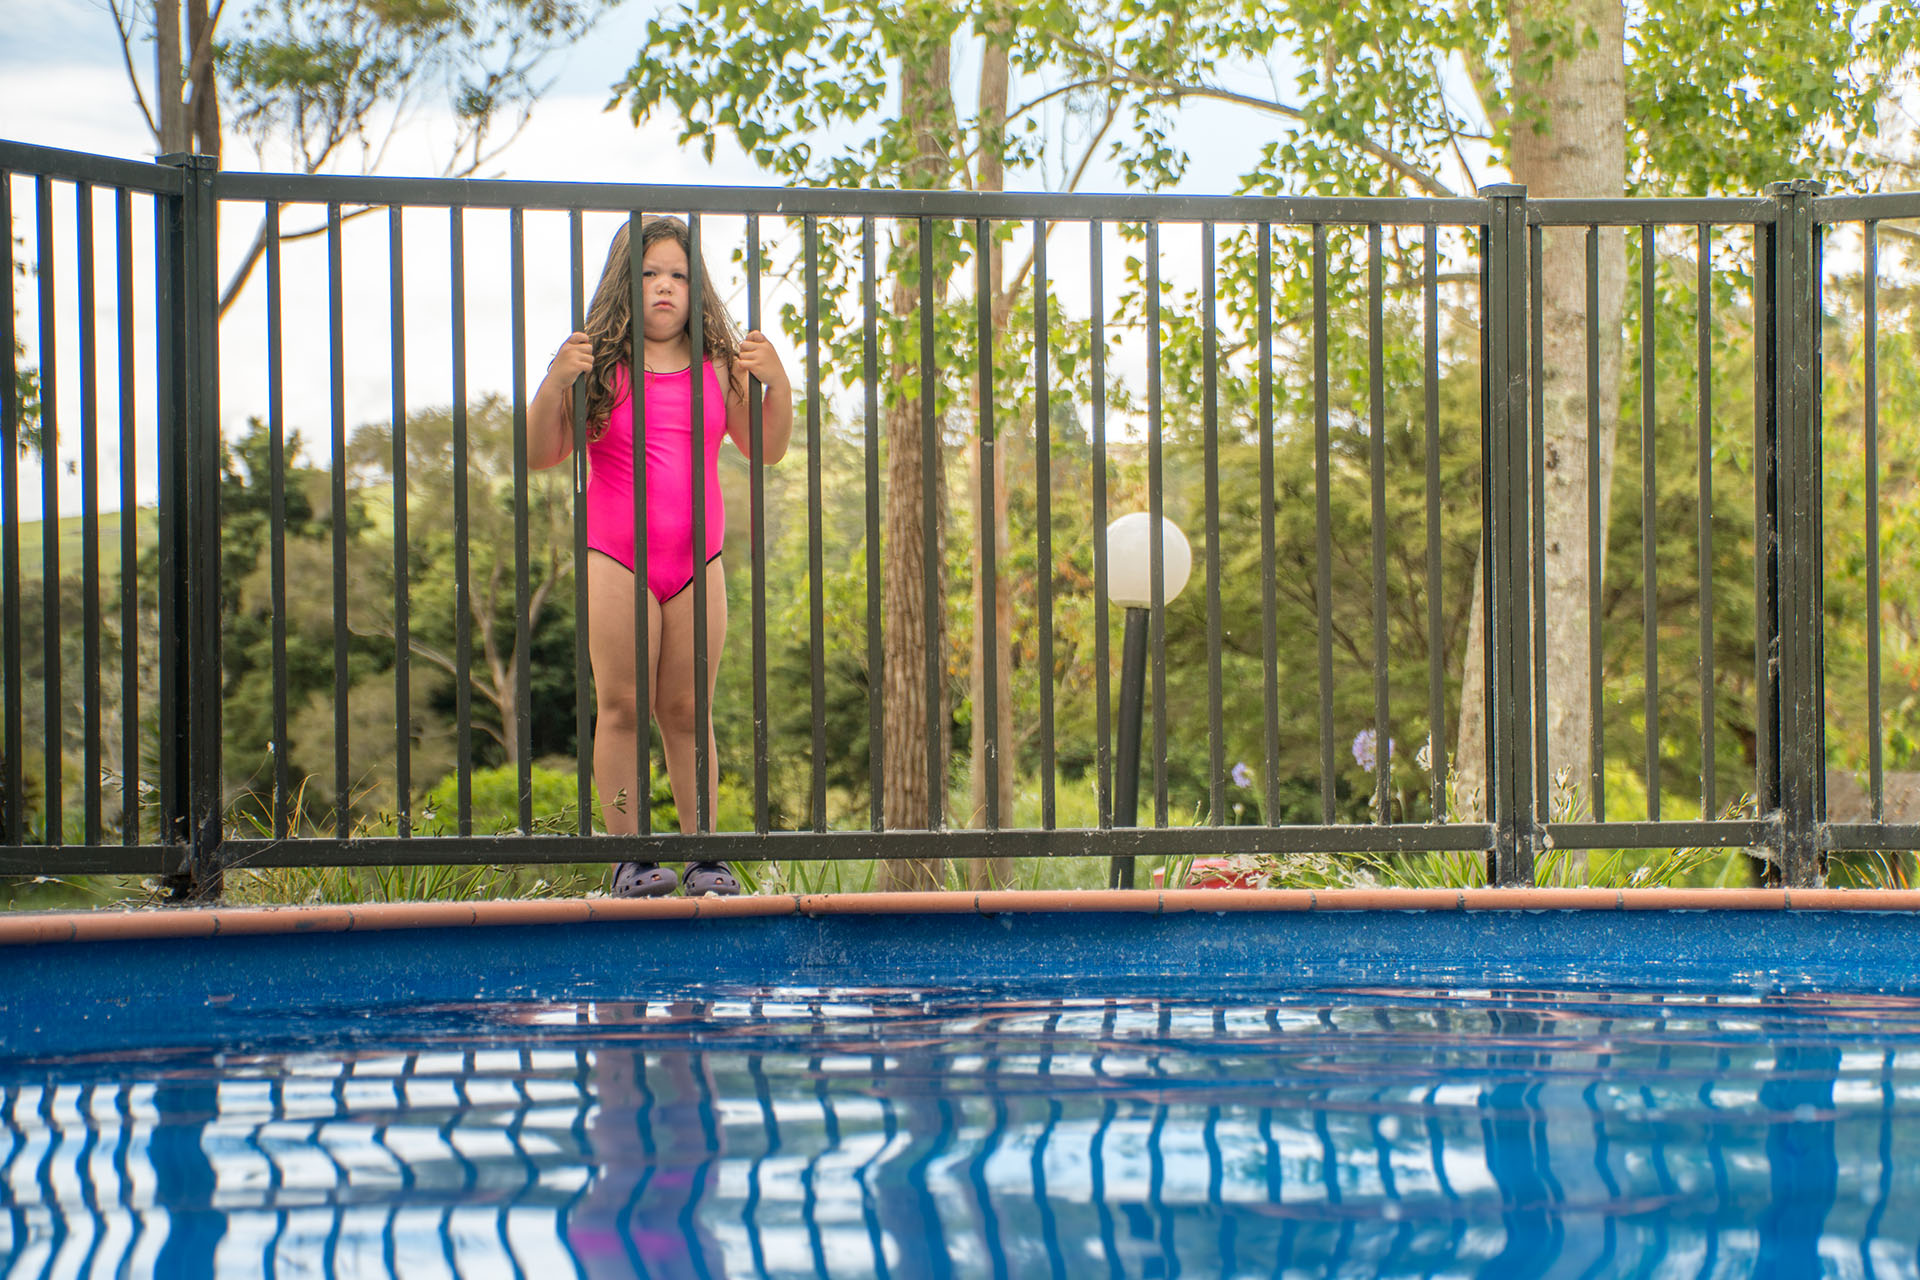 Why Does a Pool Need a Safety Fence?